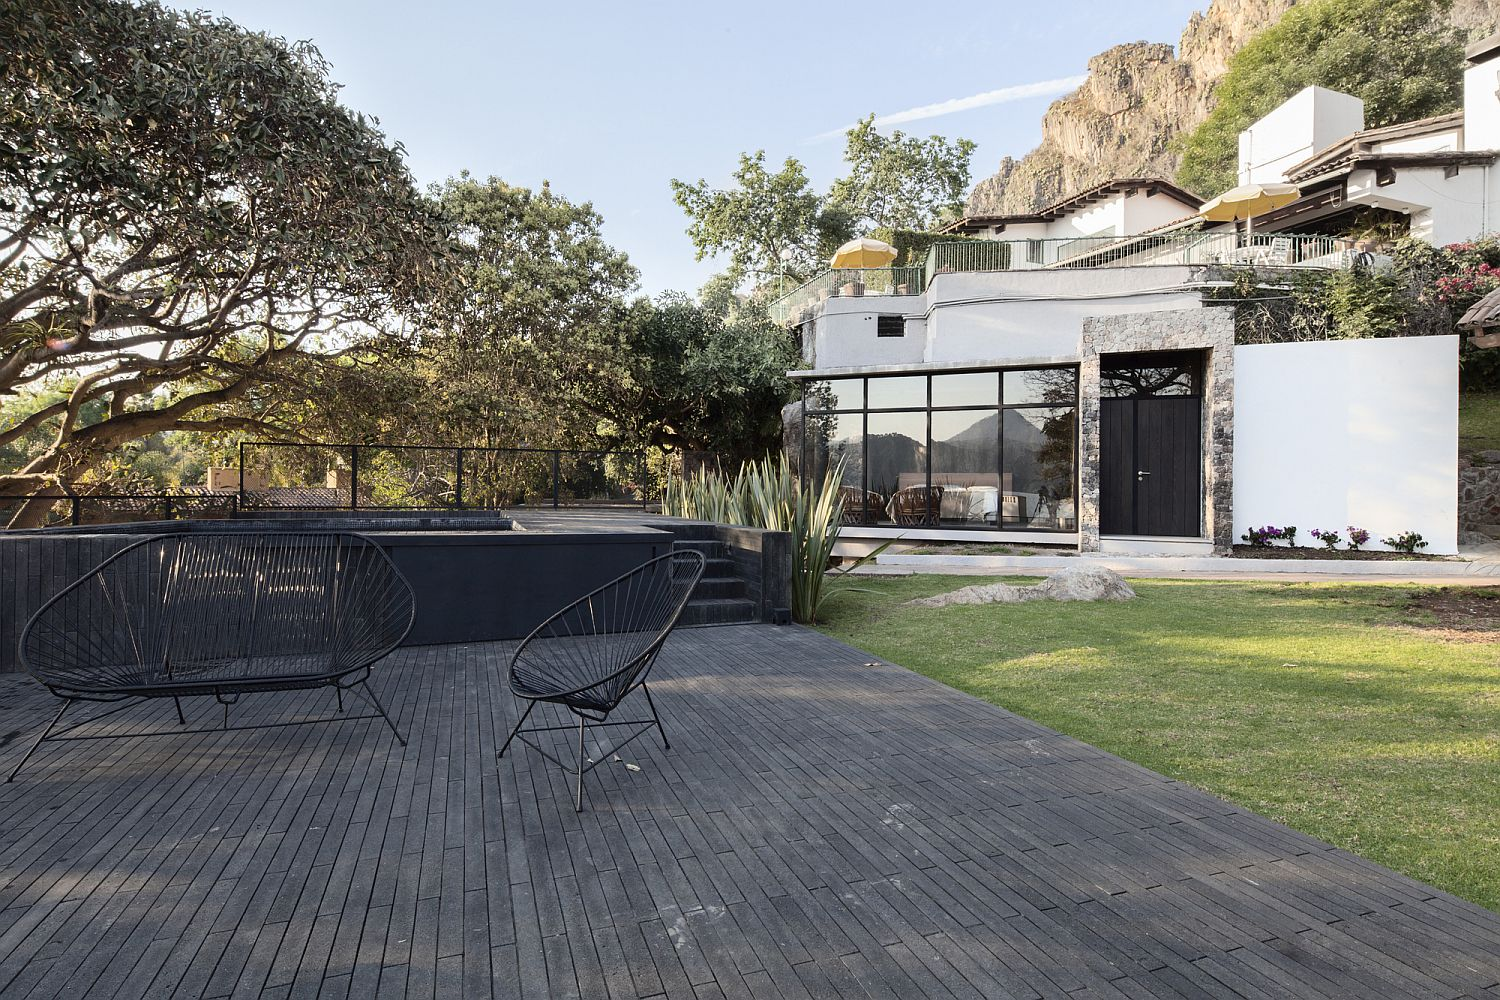 Wooden deck outside the house becomes one with the landscape